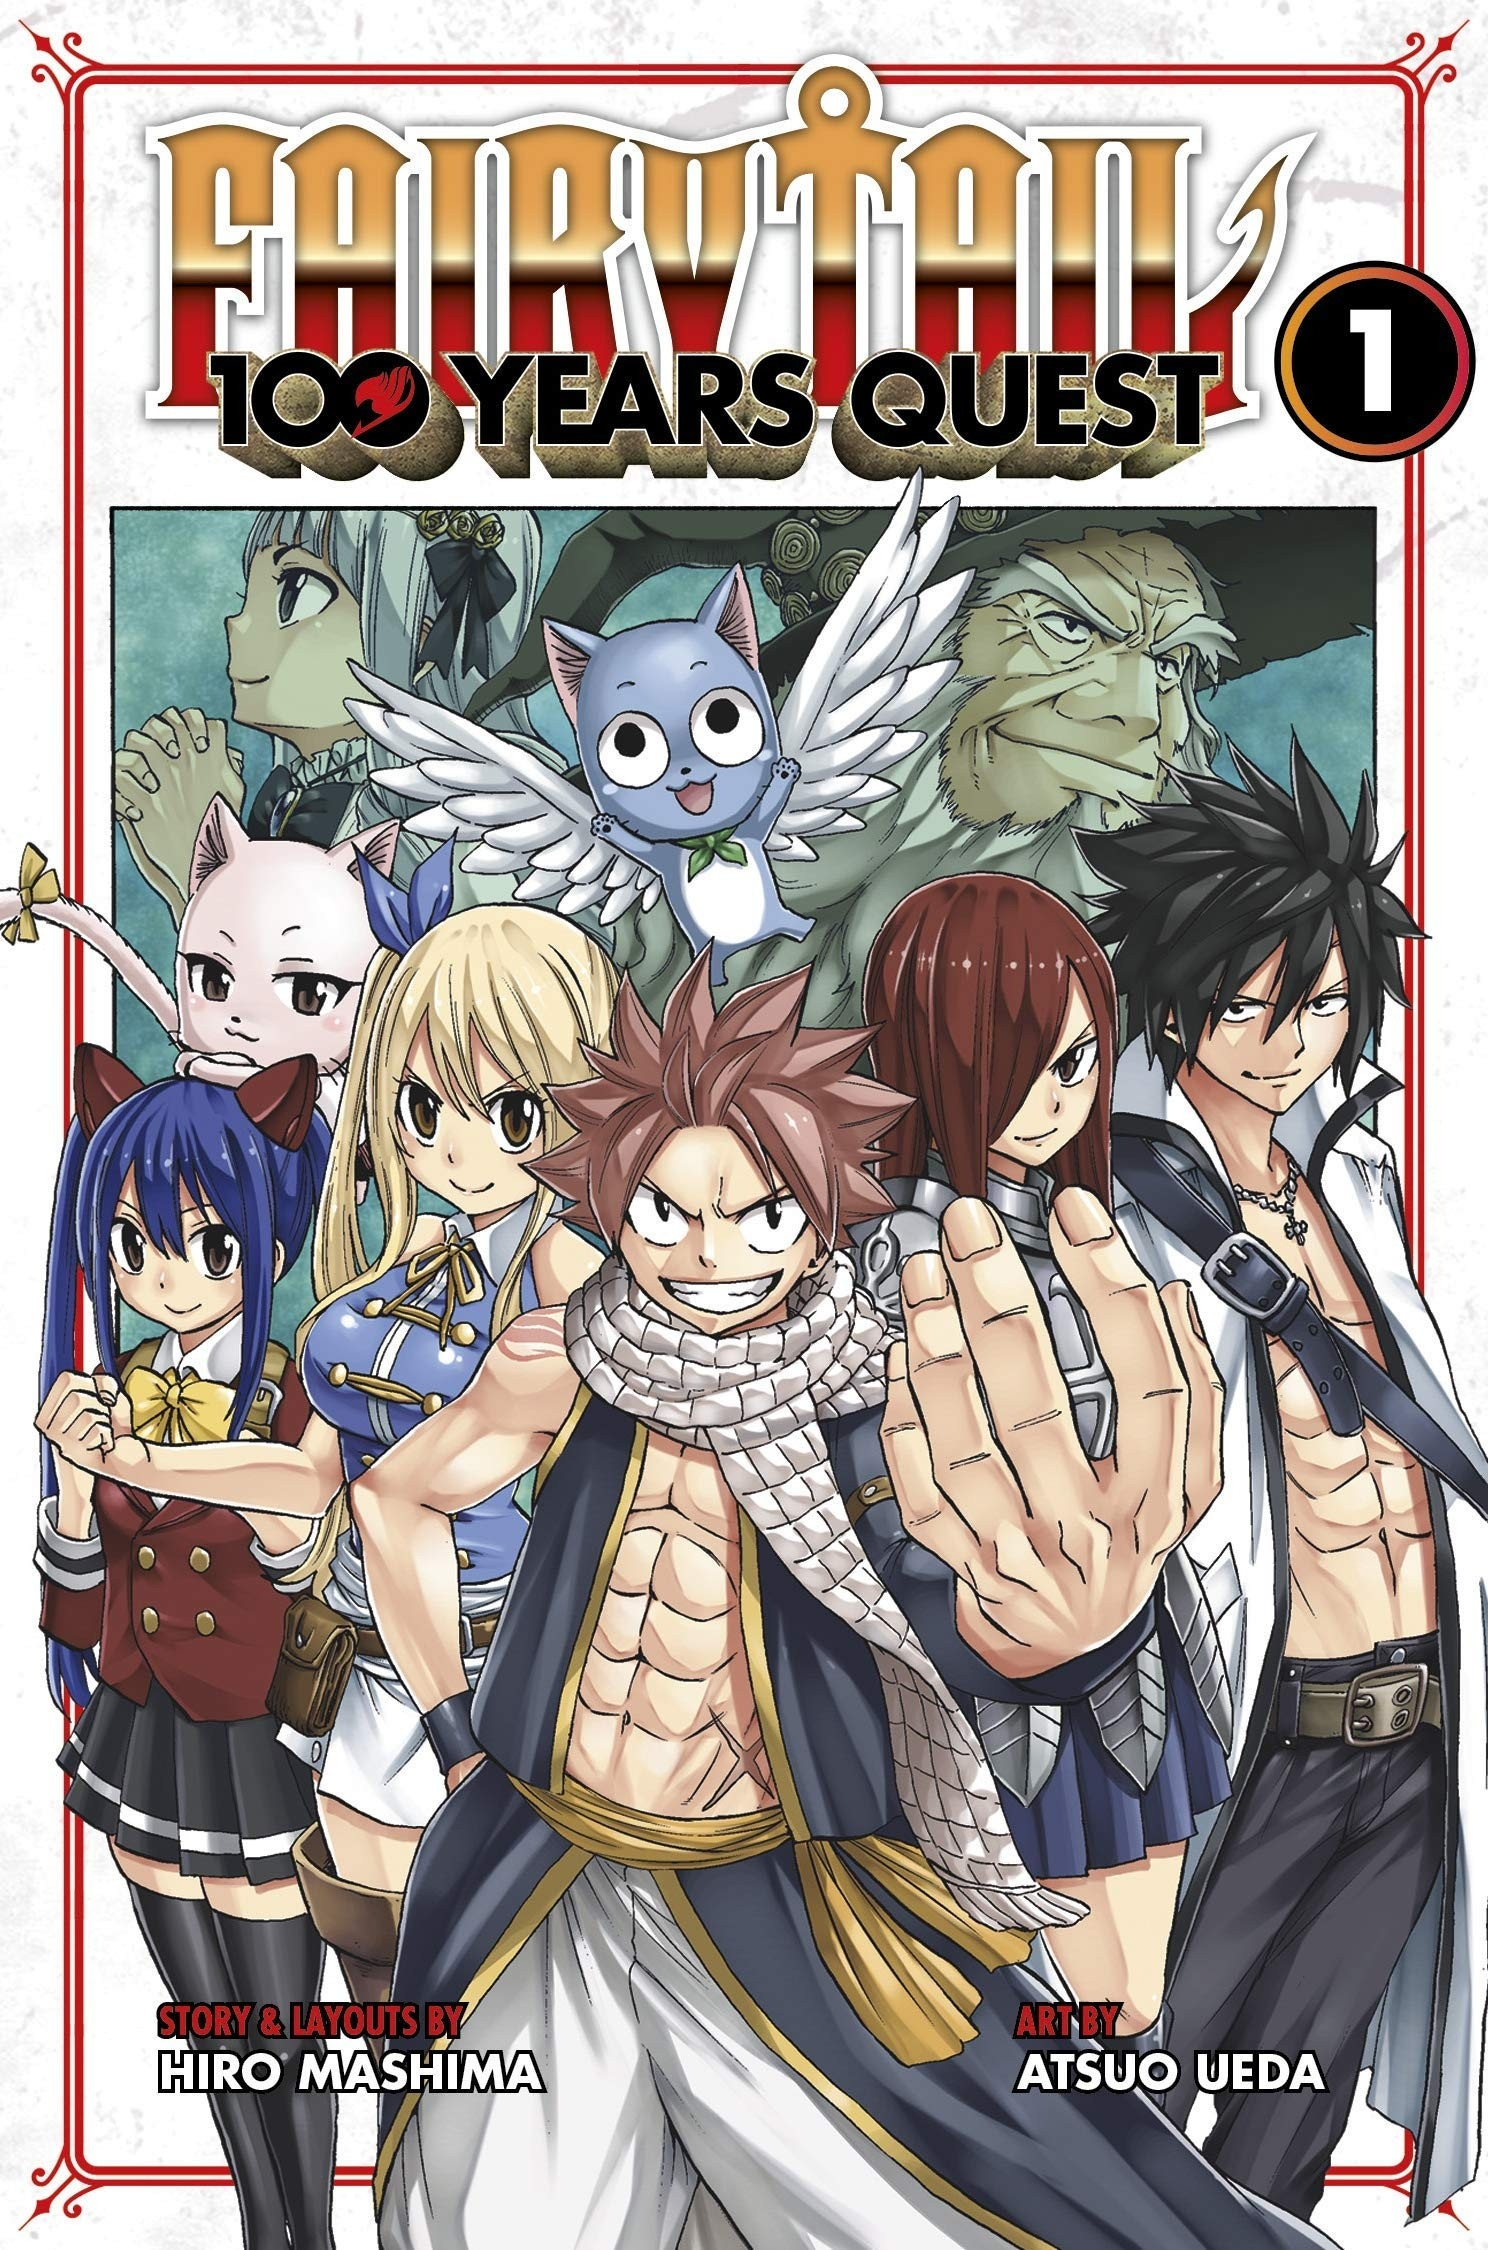 Fairy Tail, 100 years Quest Vol. 01